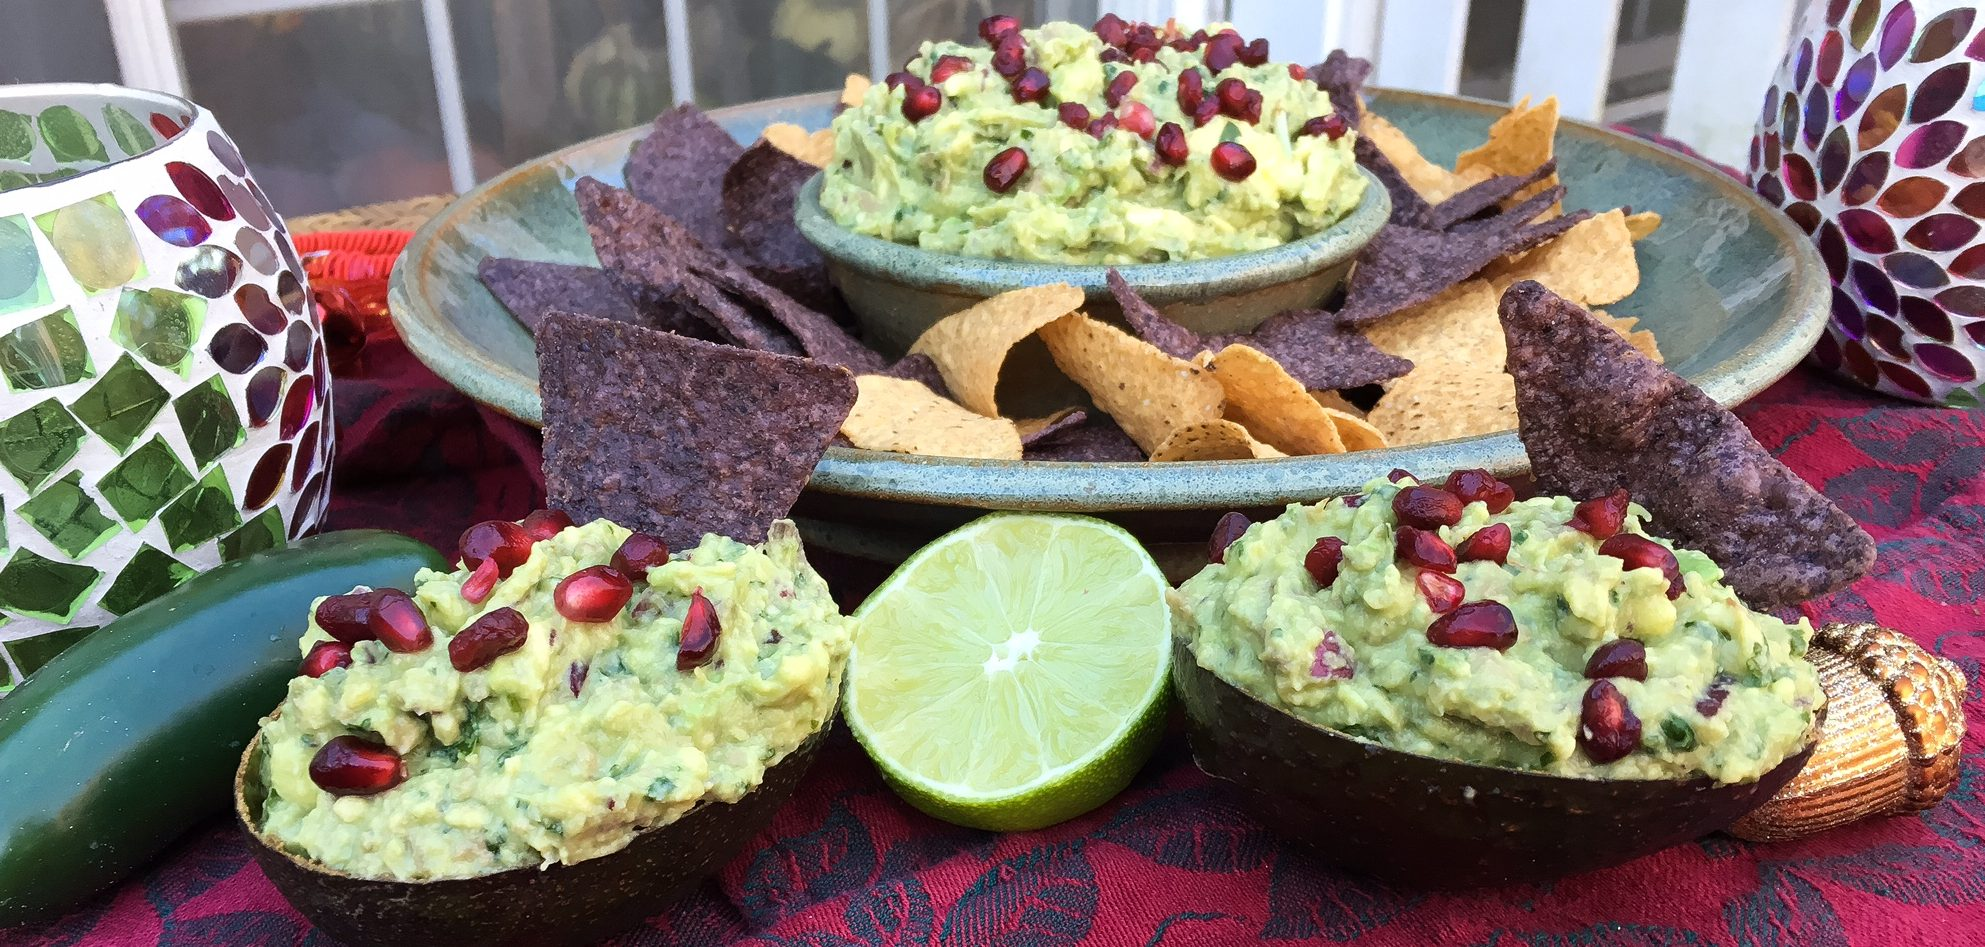 guacamole, avocado, chipotle, cilantro, mexican food, appetizer, pomegranate seeds, holiday appetizer